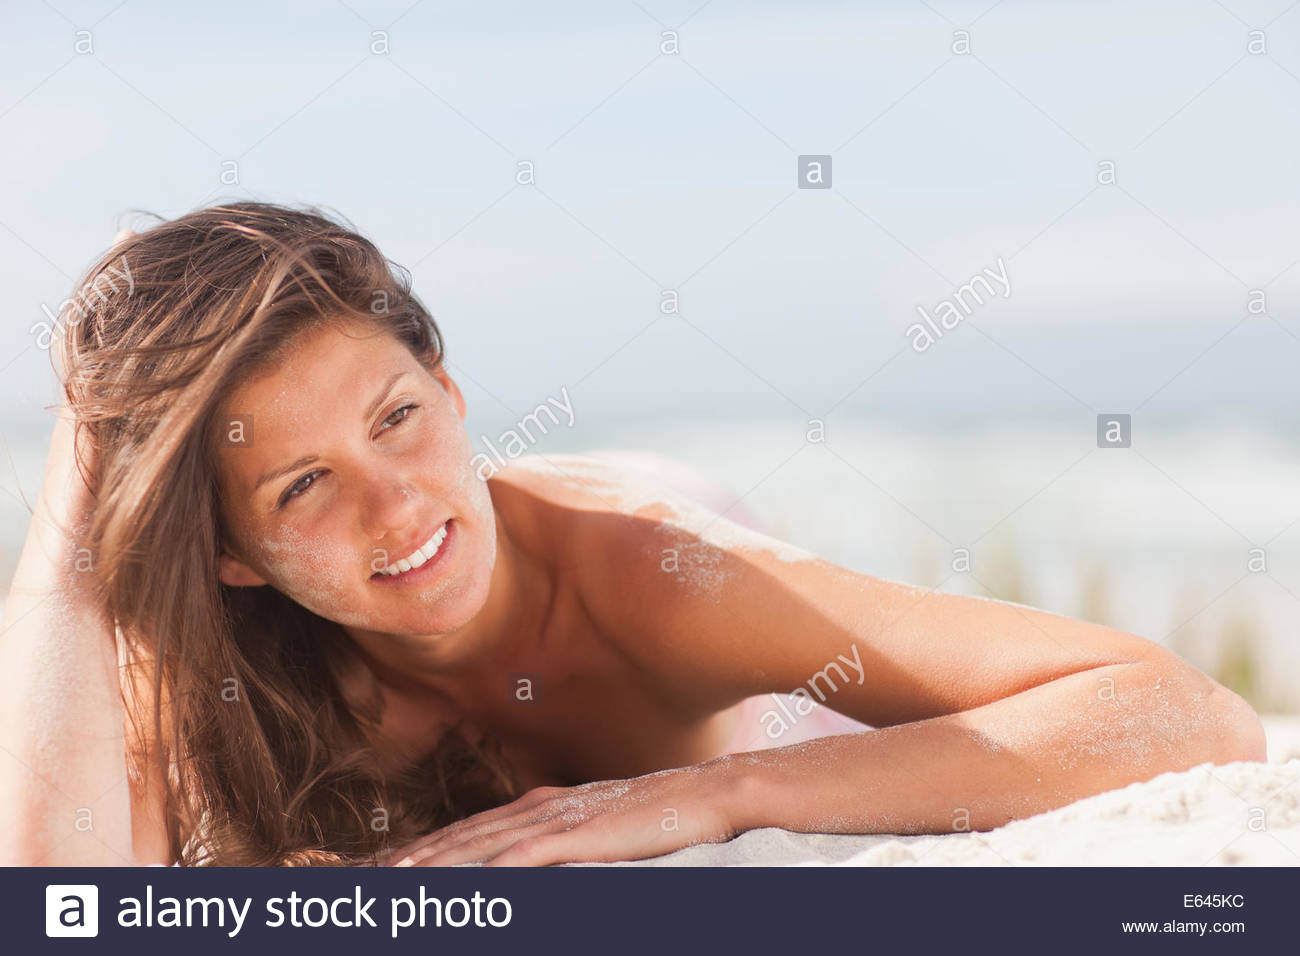 Woman on beach Photo Stock